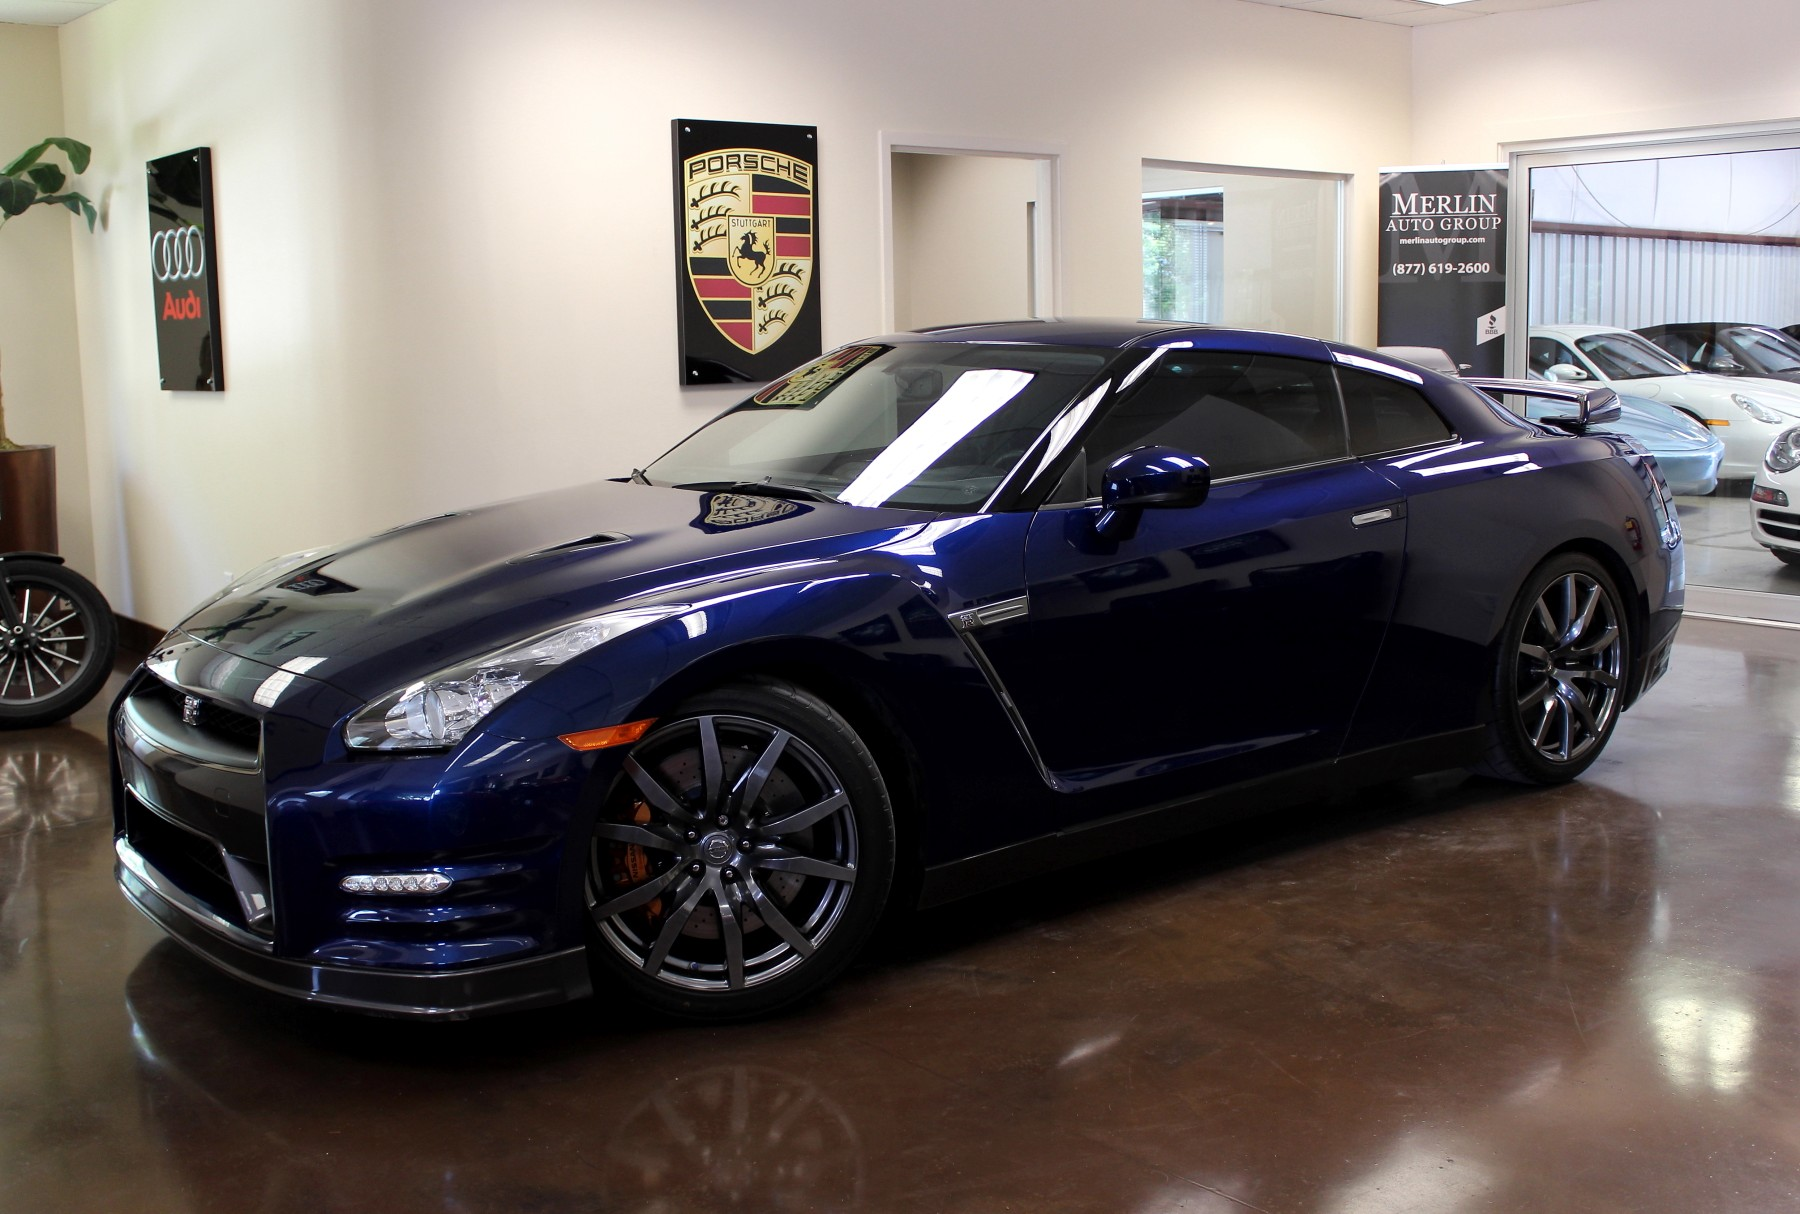 used 2014 nissan gt r stock p2826 ultra luxury car from merlin auto group. Black Bedroom Furniture Sets. Home Design Ideas